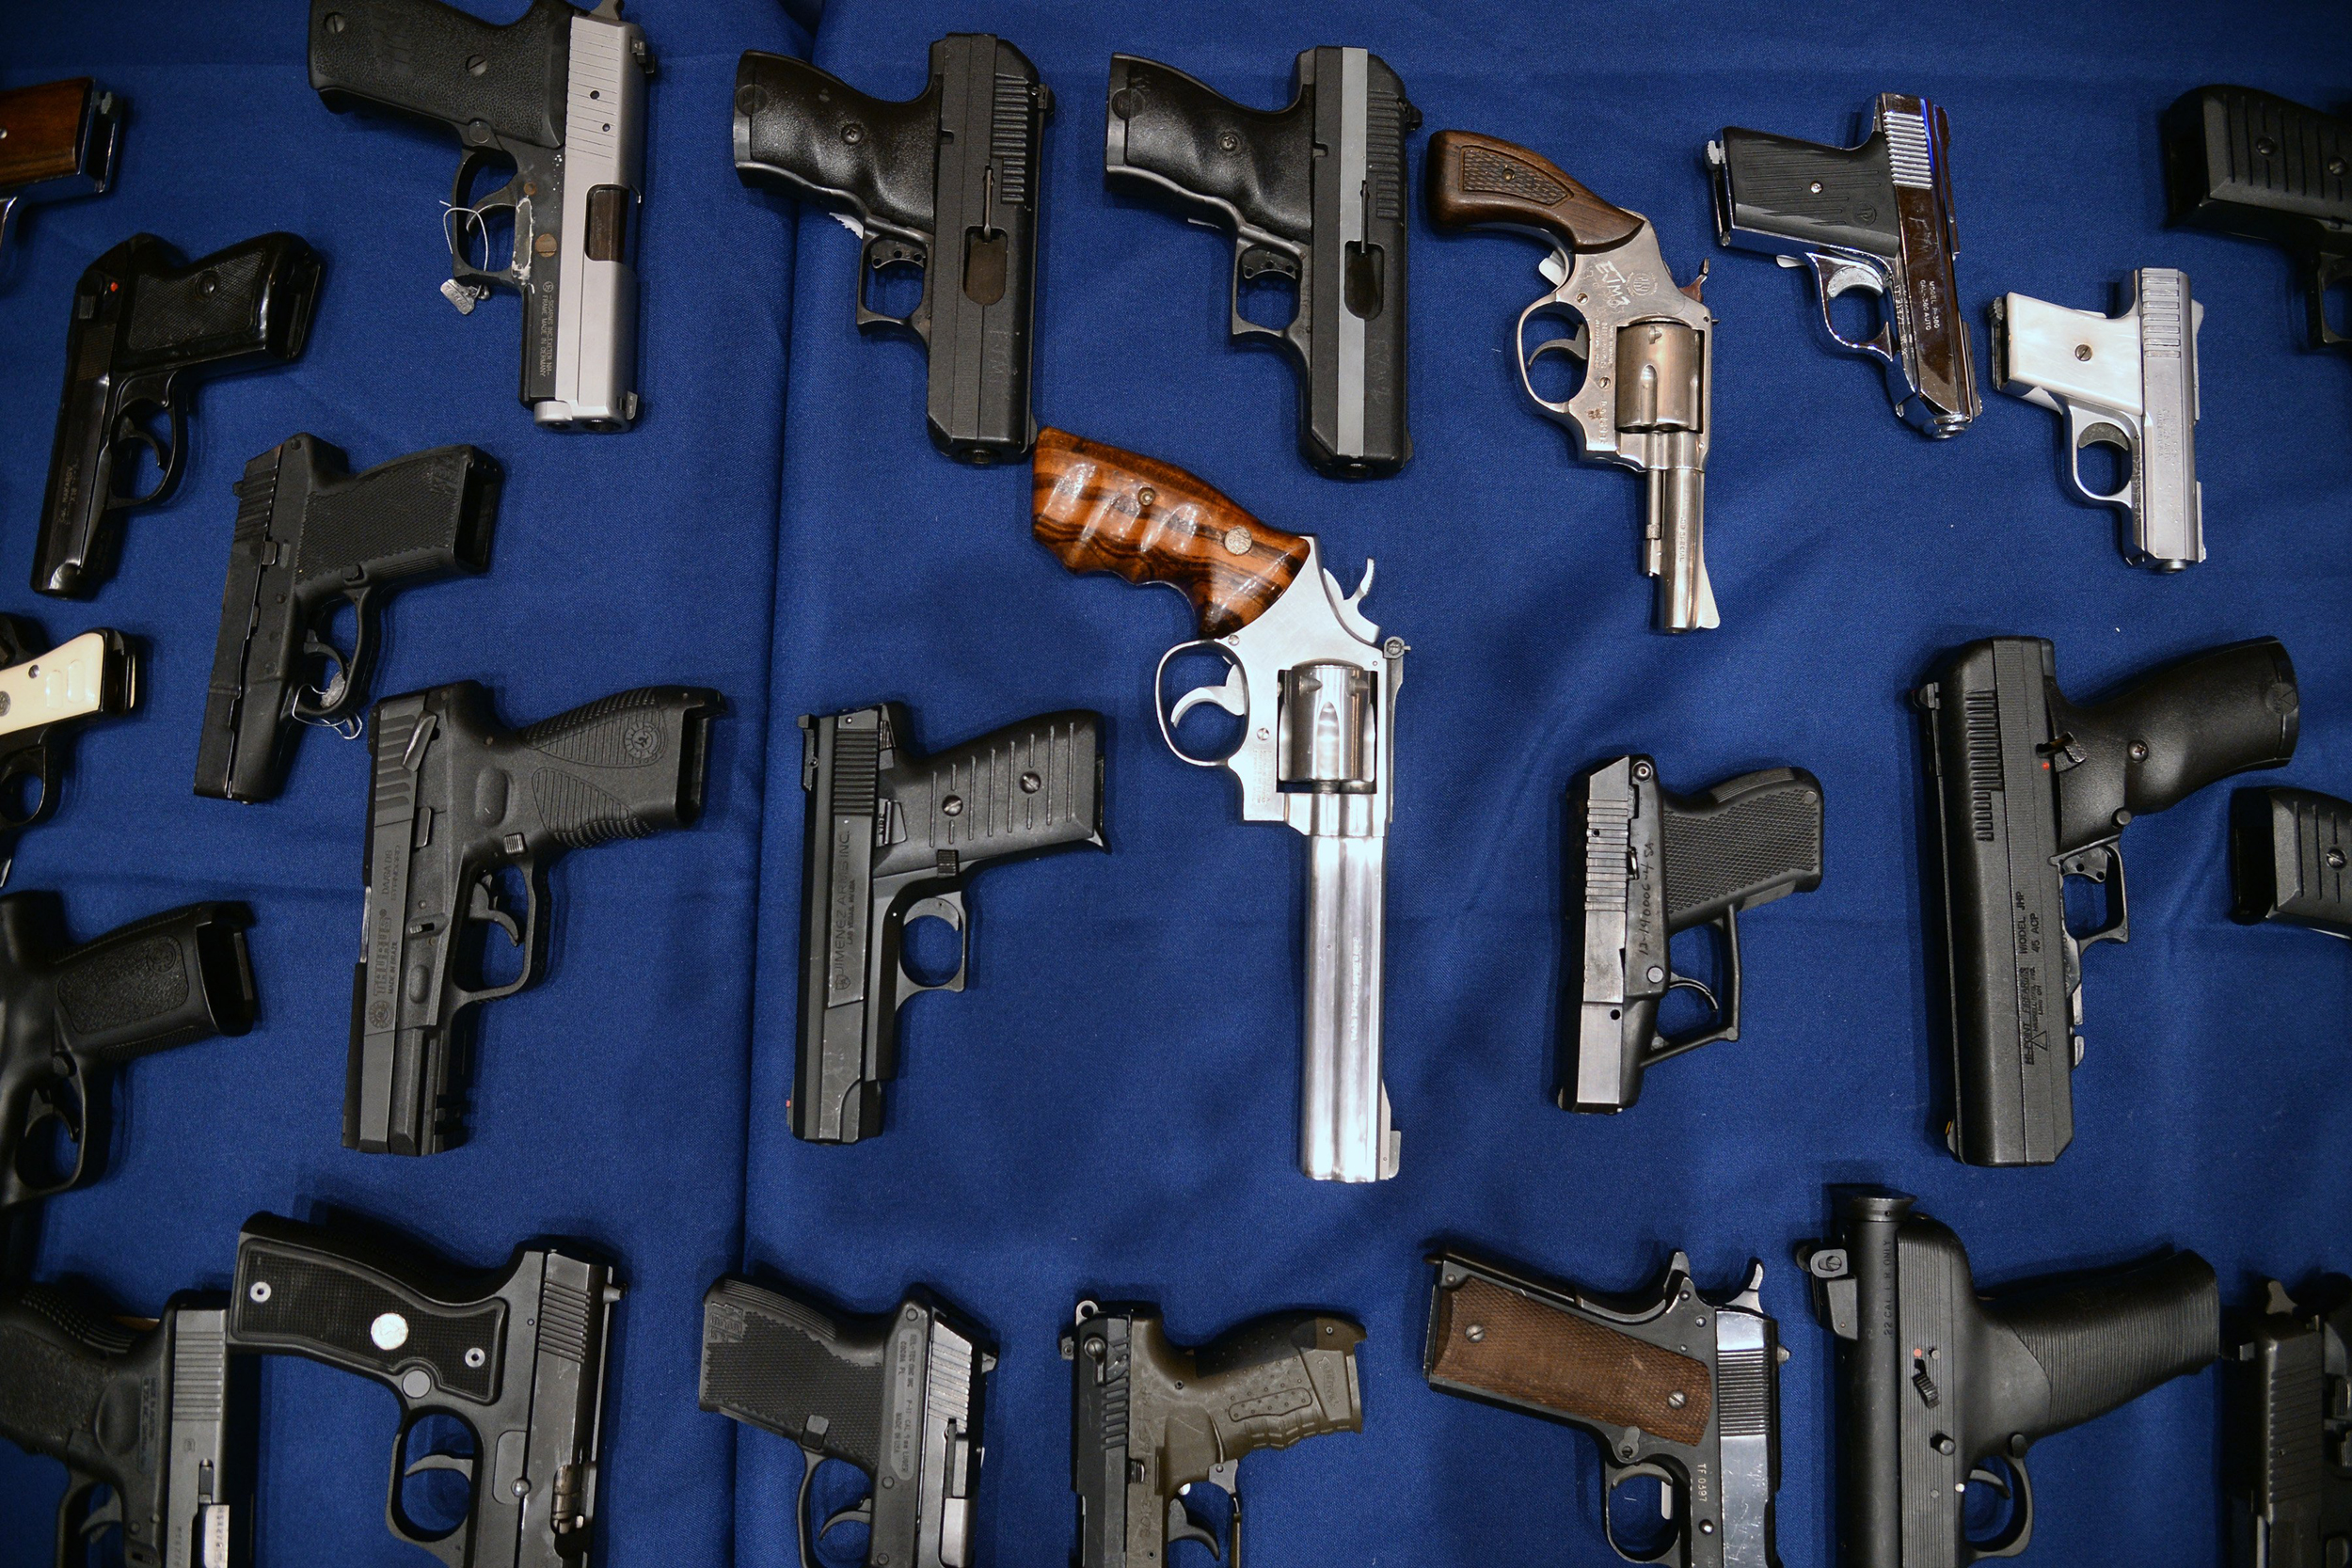 Doctors Can Ask Patients About Guns: Federal Court